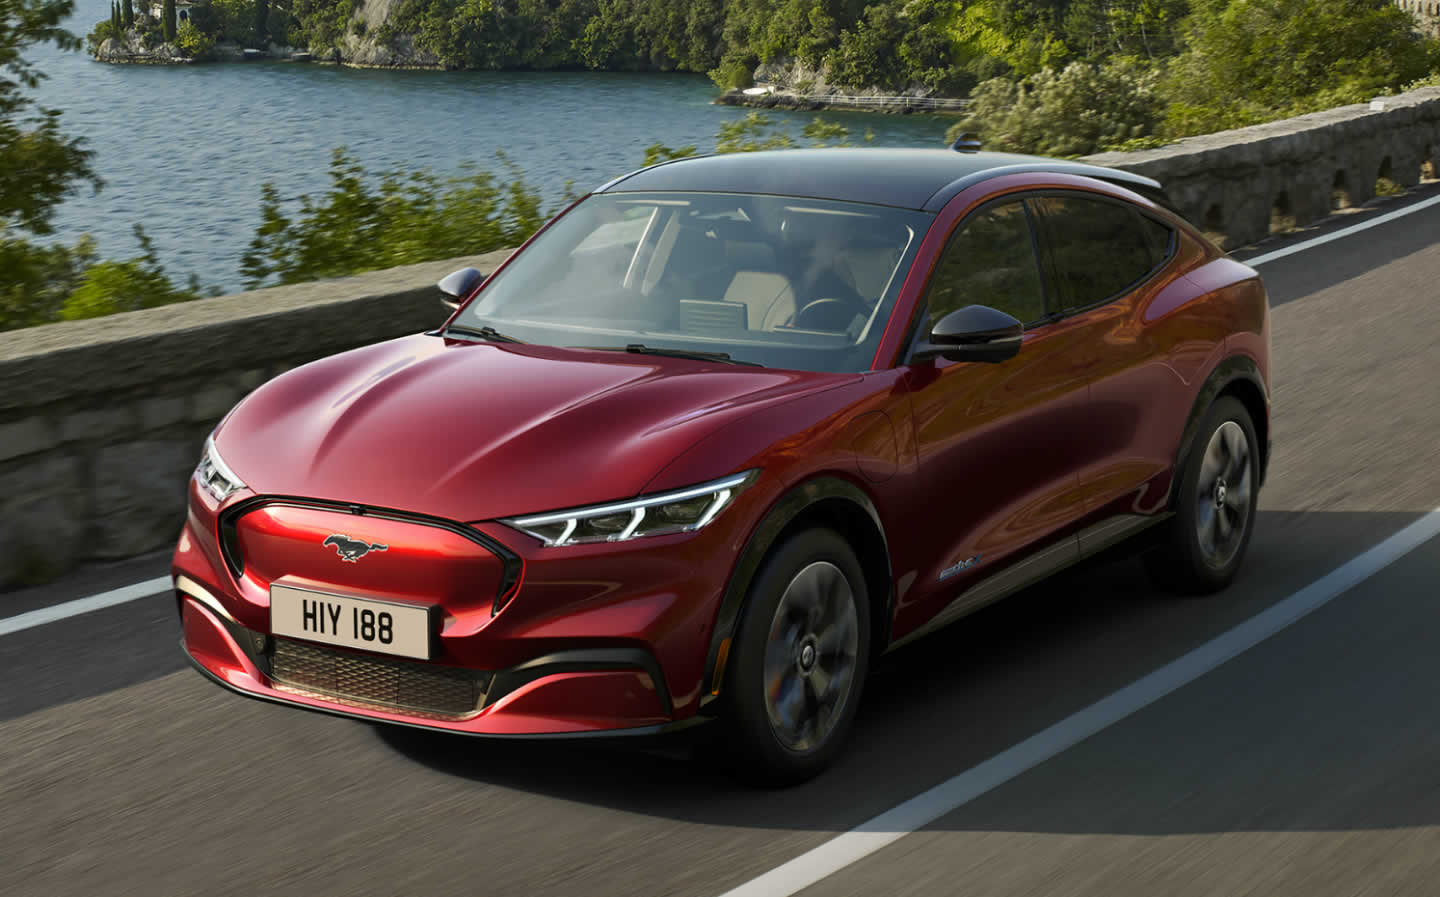 Ford Mustang 2020 SUV